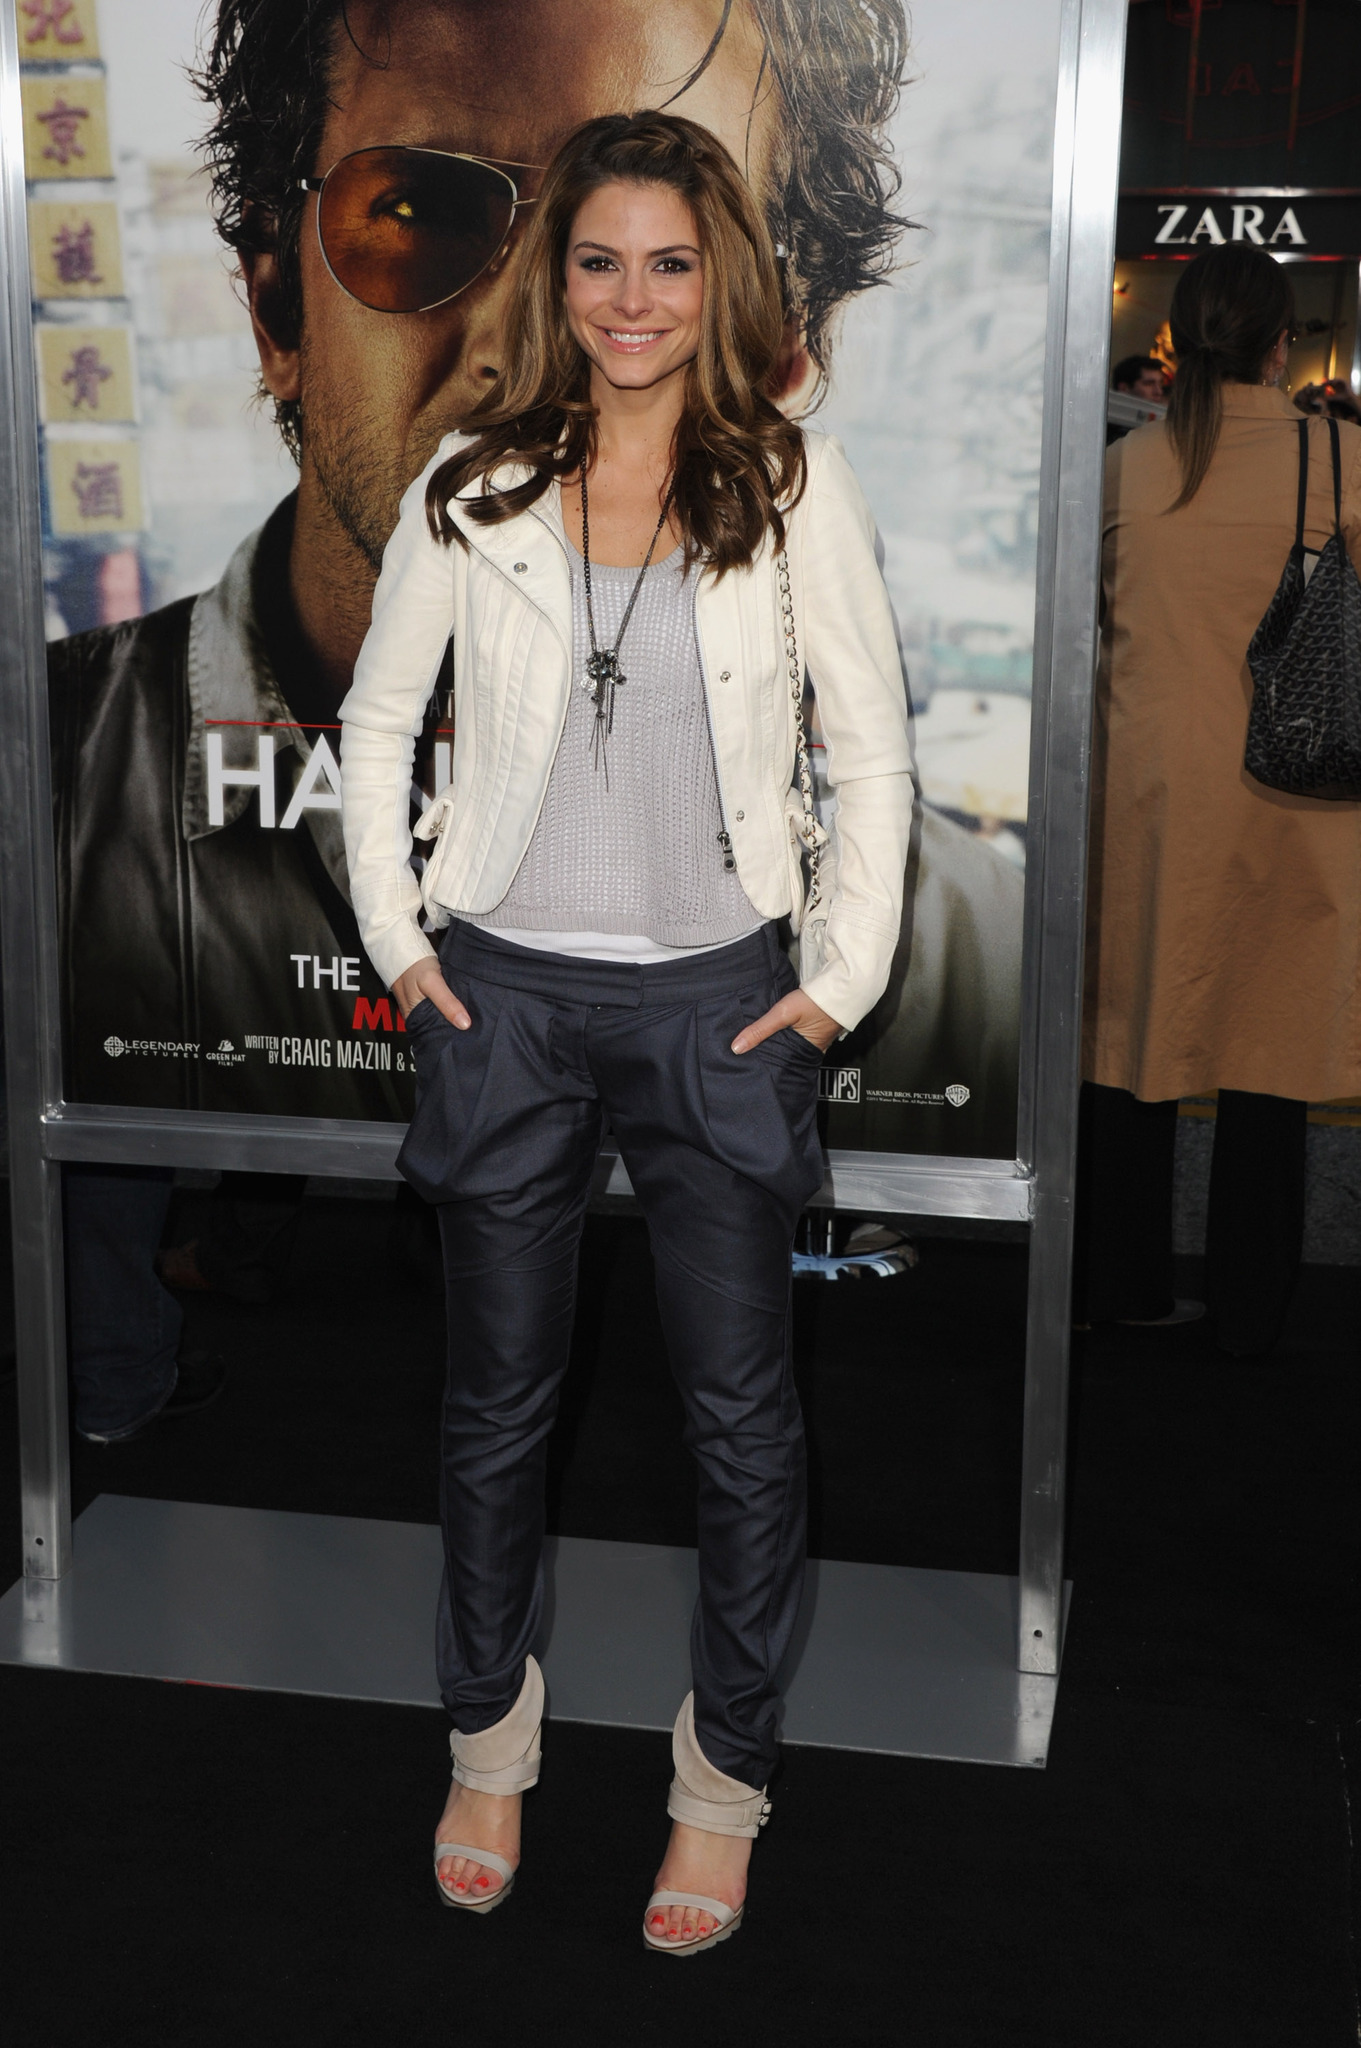 Maria Menounos at an event for The Hangover Part II (2011)